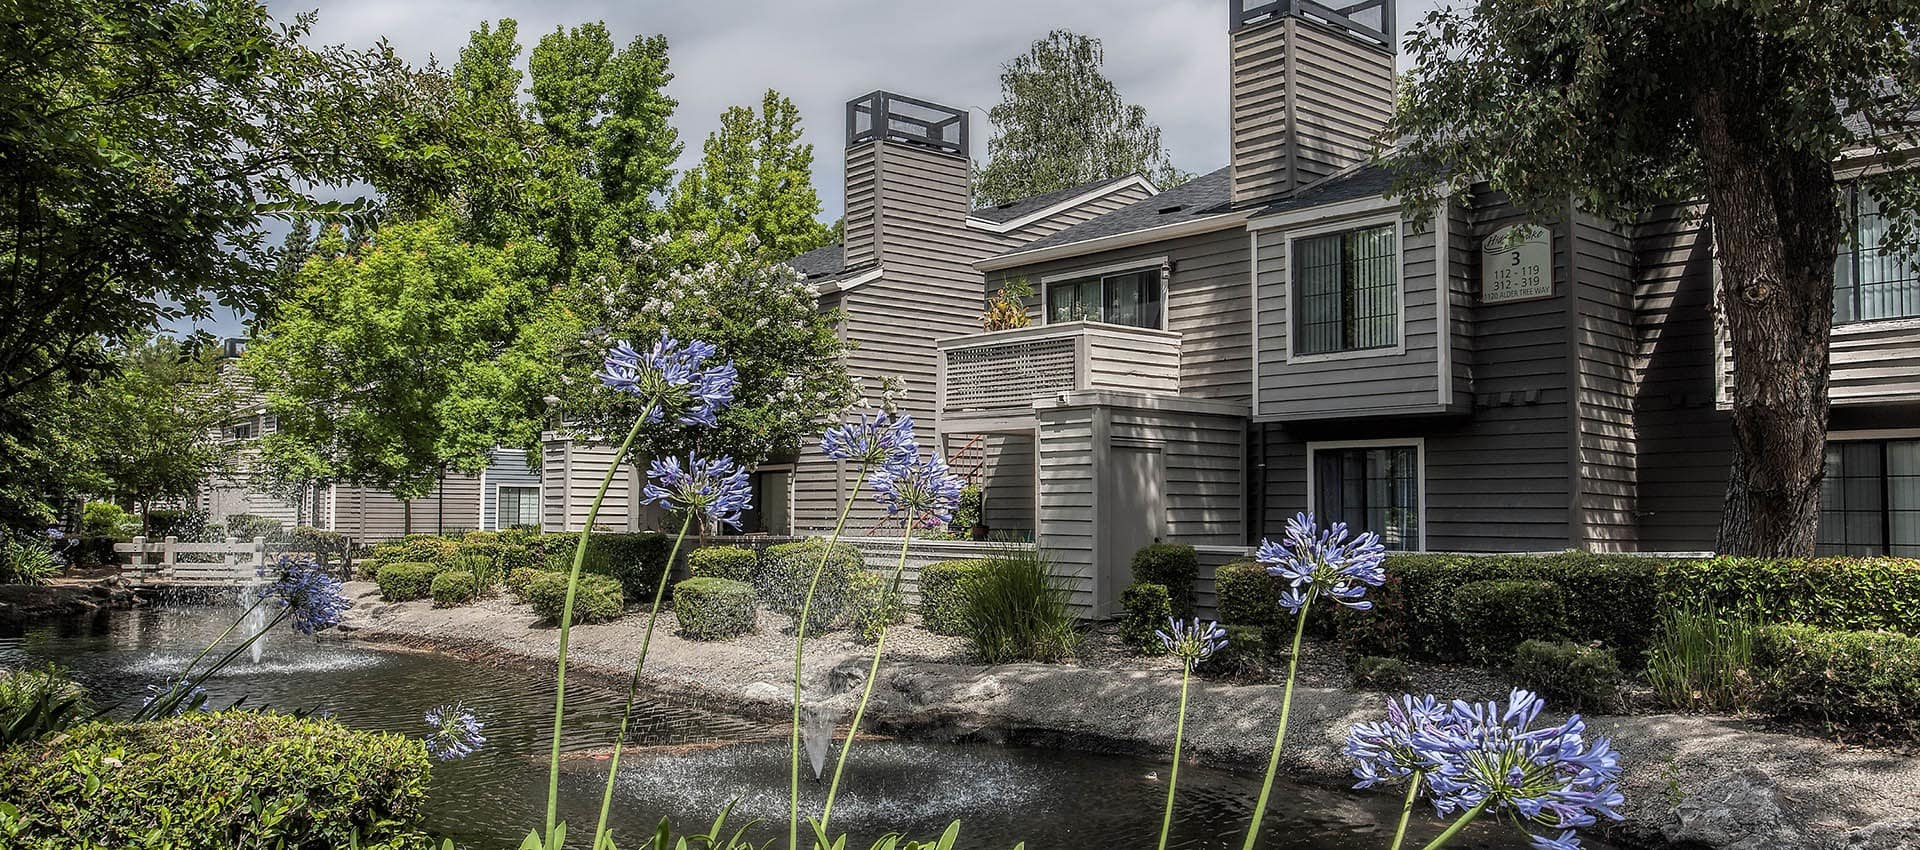 Water Feature And Landscaping at Hidden Lake Condominium Rentals in Sacramento, CA